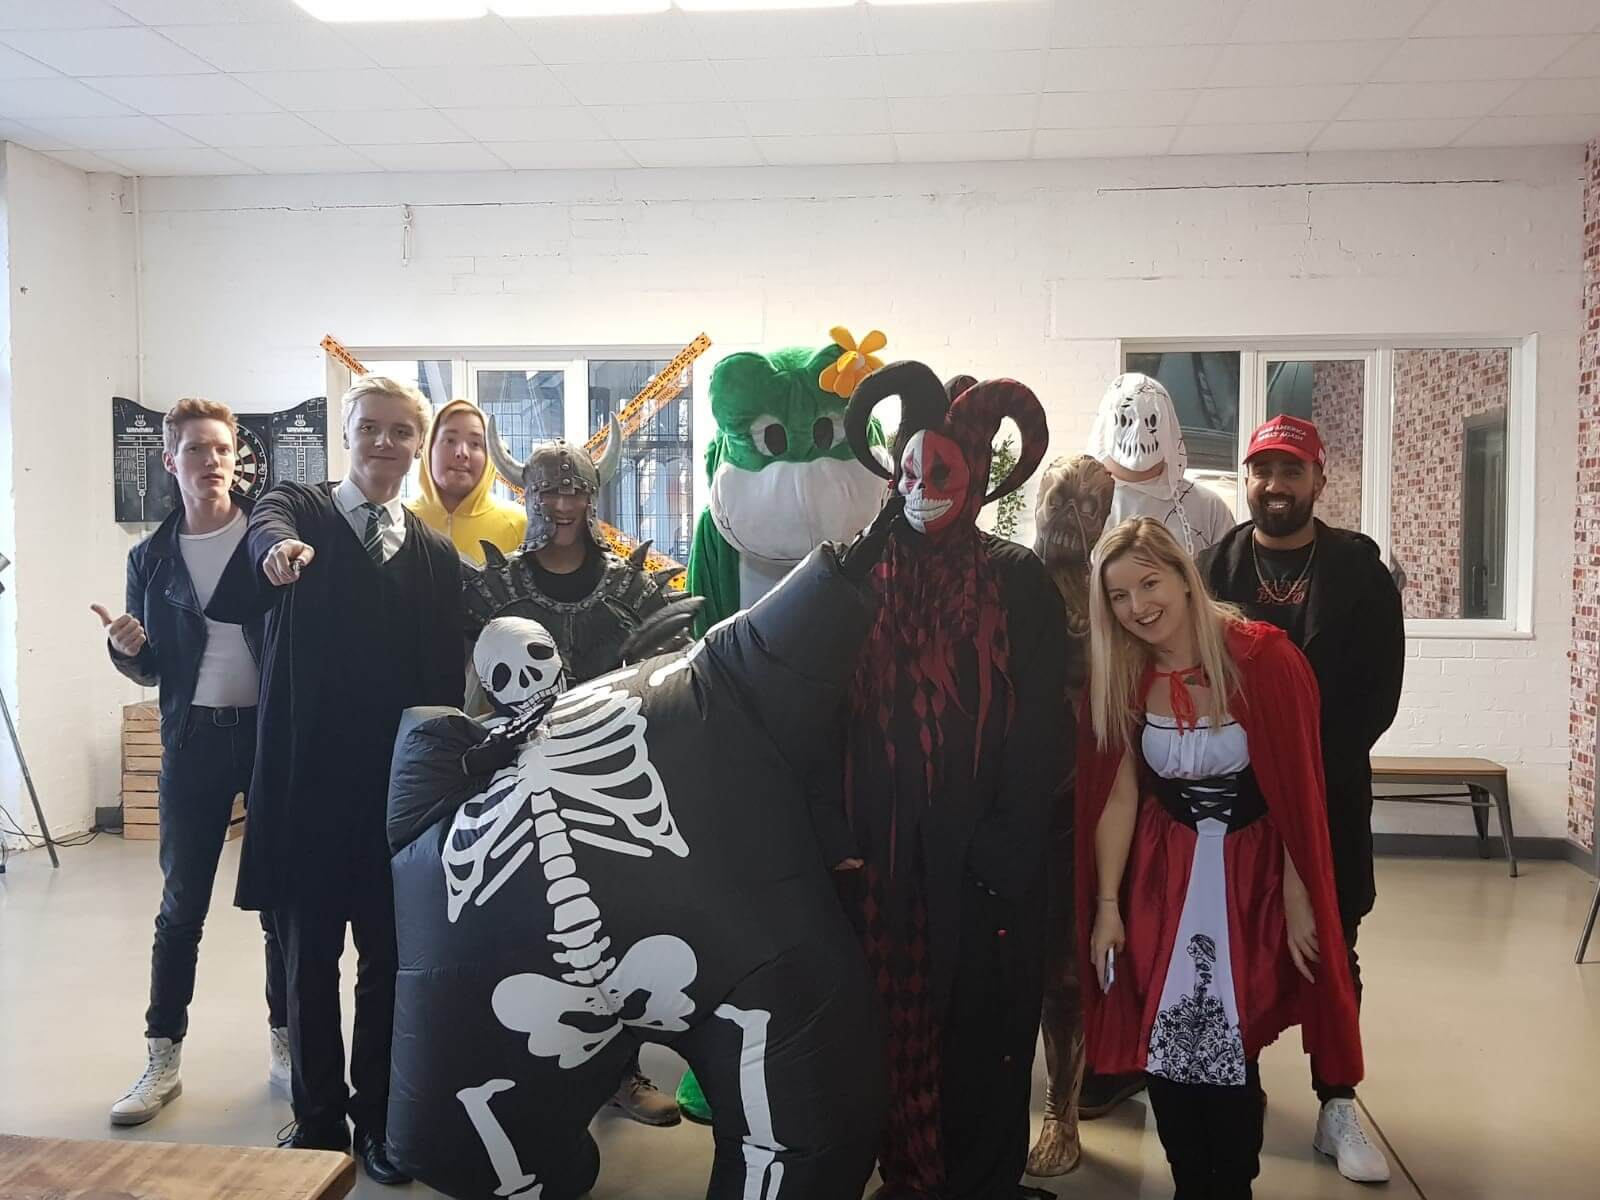 Some of the team dressed up for Halloween